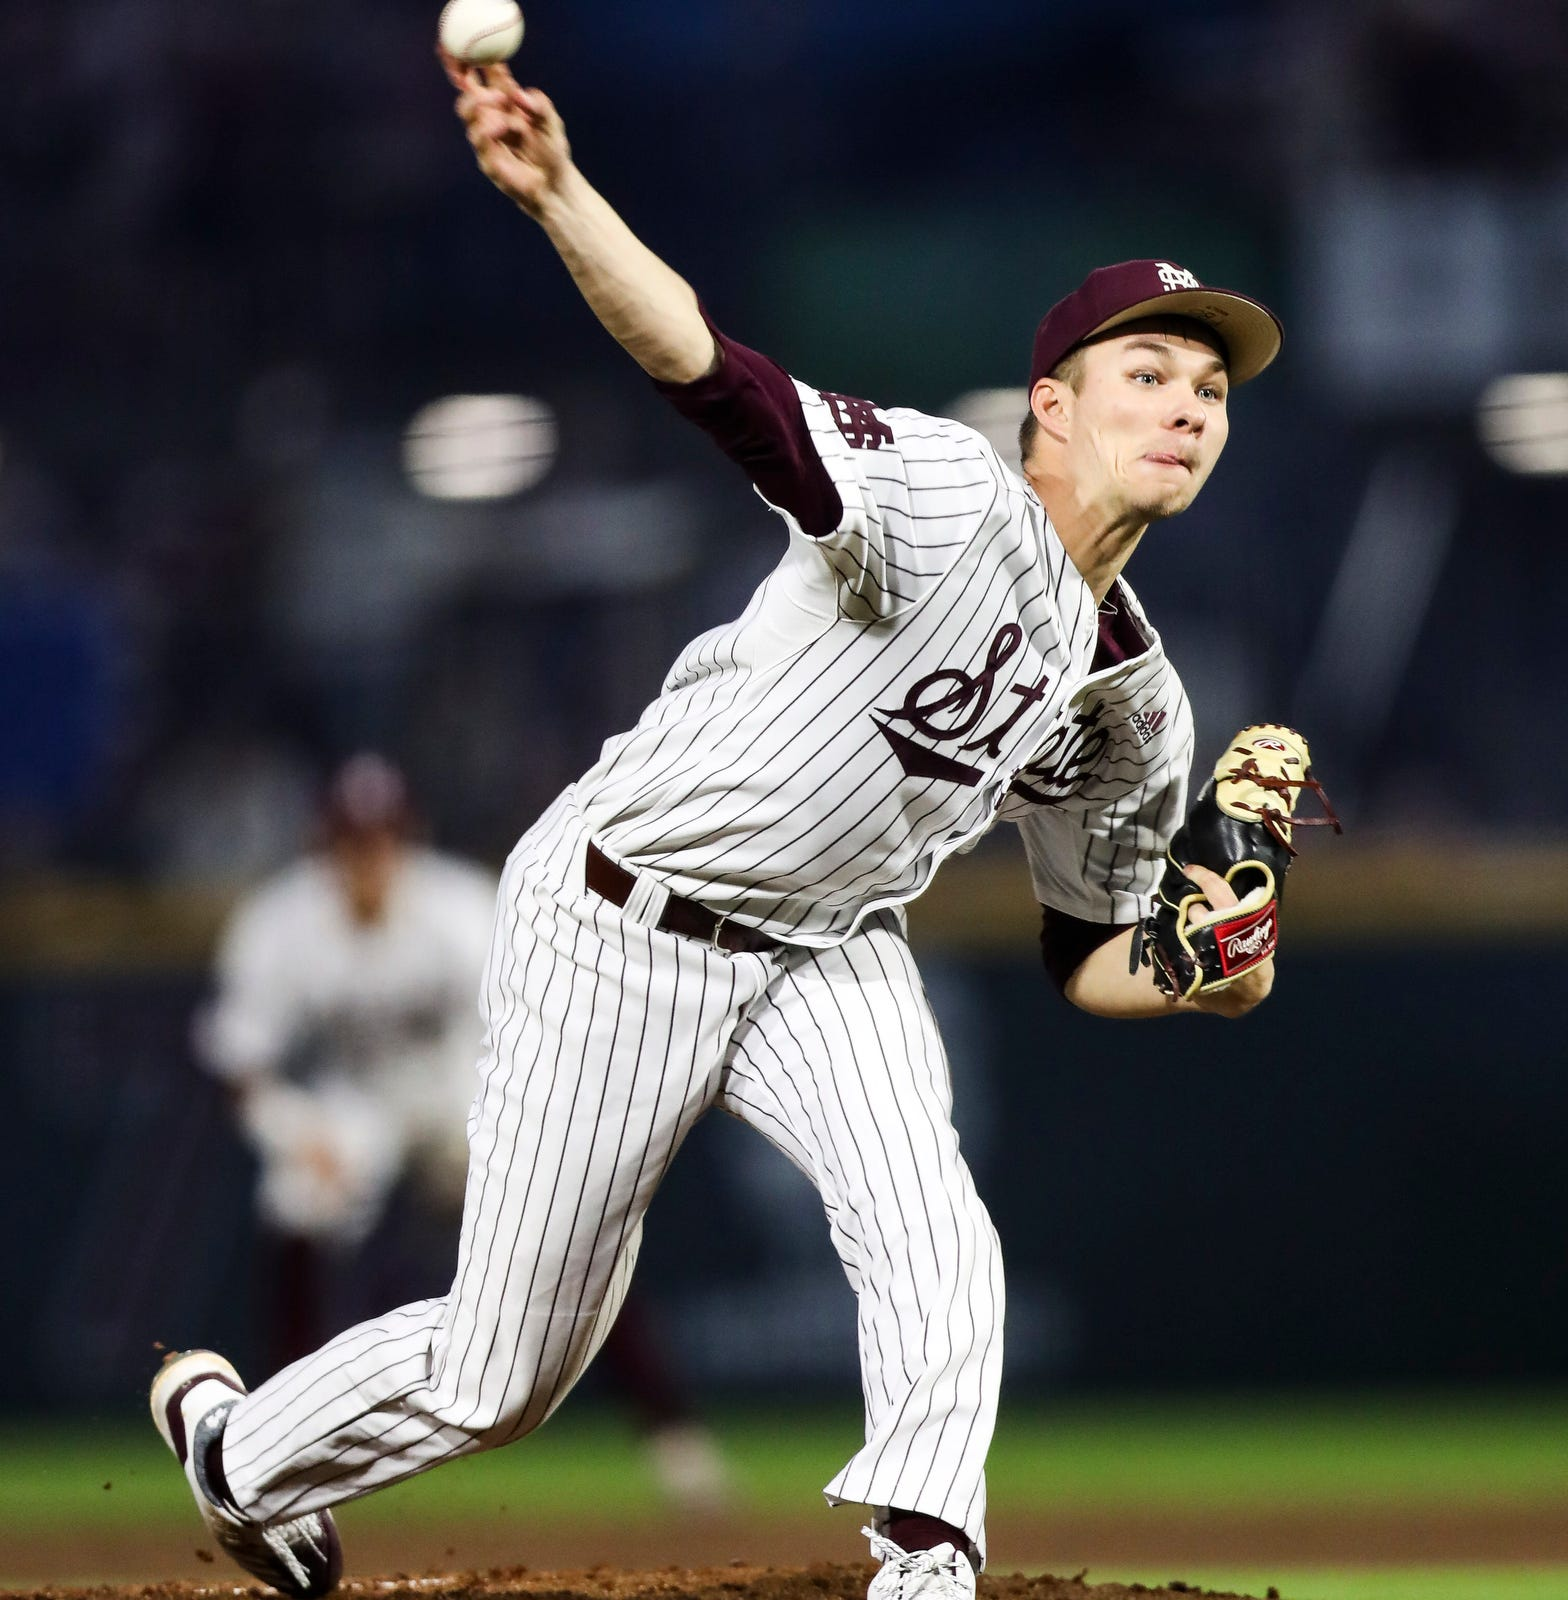 Mississippi State baseball loses second-straight game against Arkansas